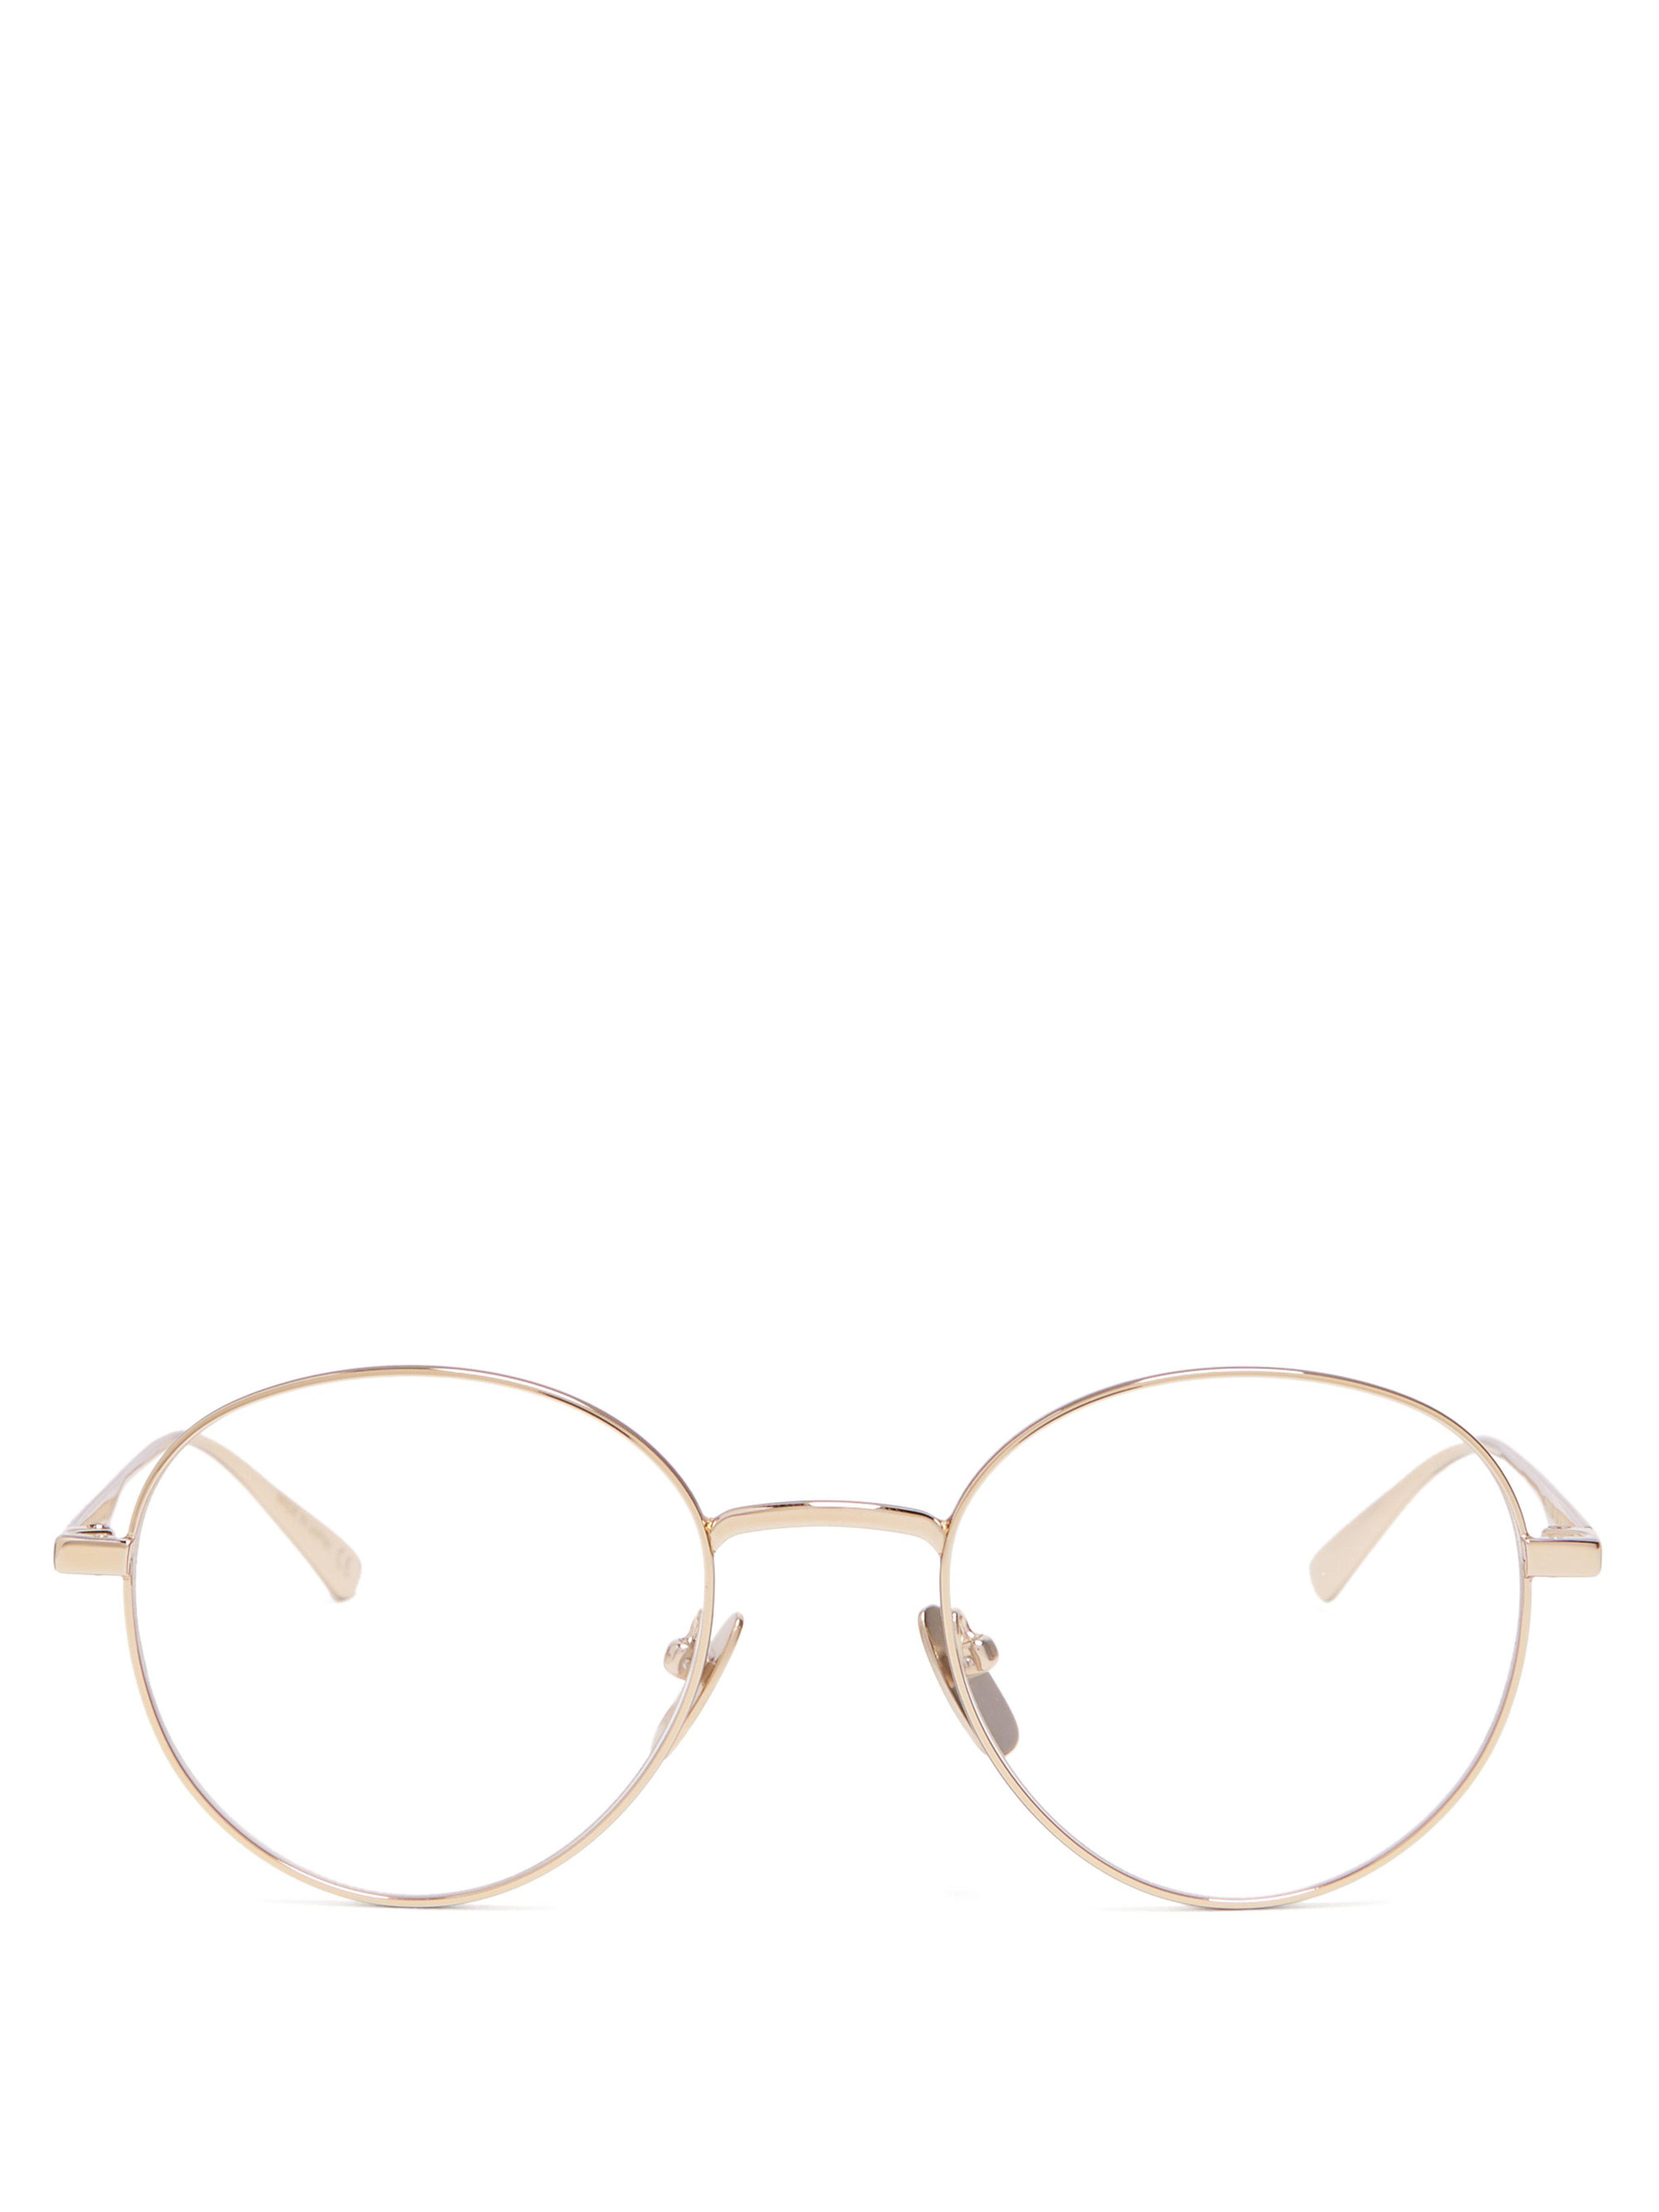 f684dec1391 Gucci Round Metal Glasses in Metallic for Men - Lyst